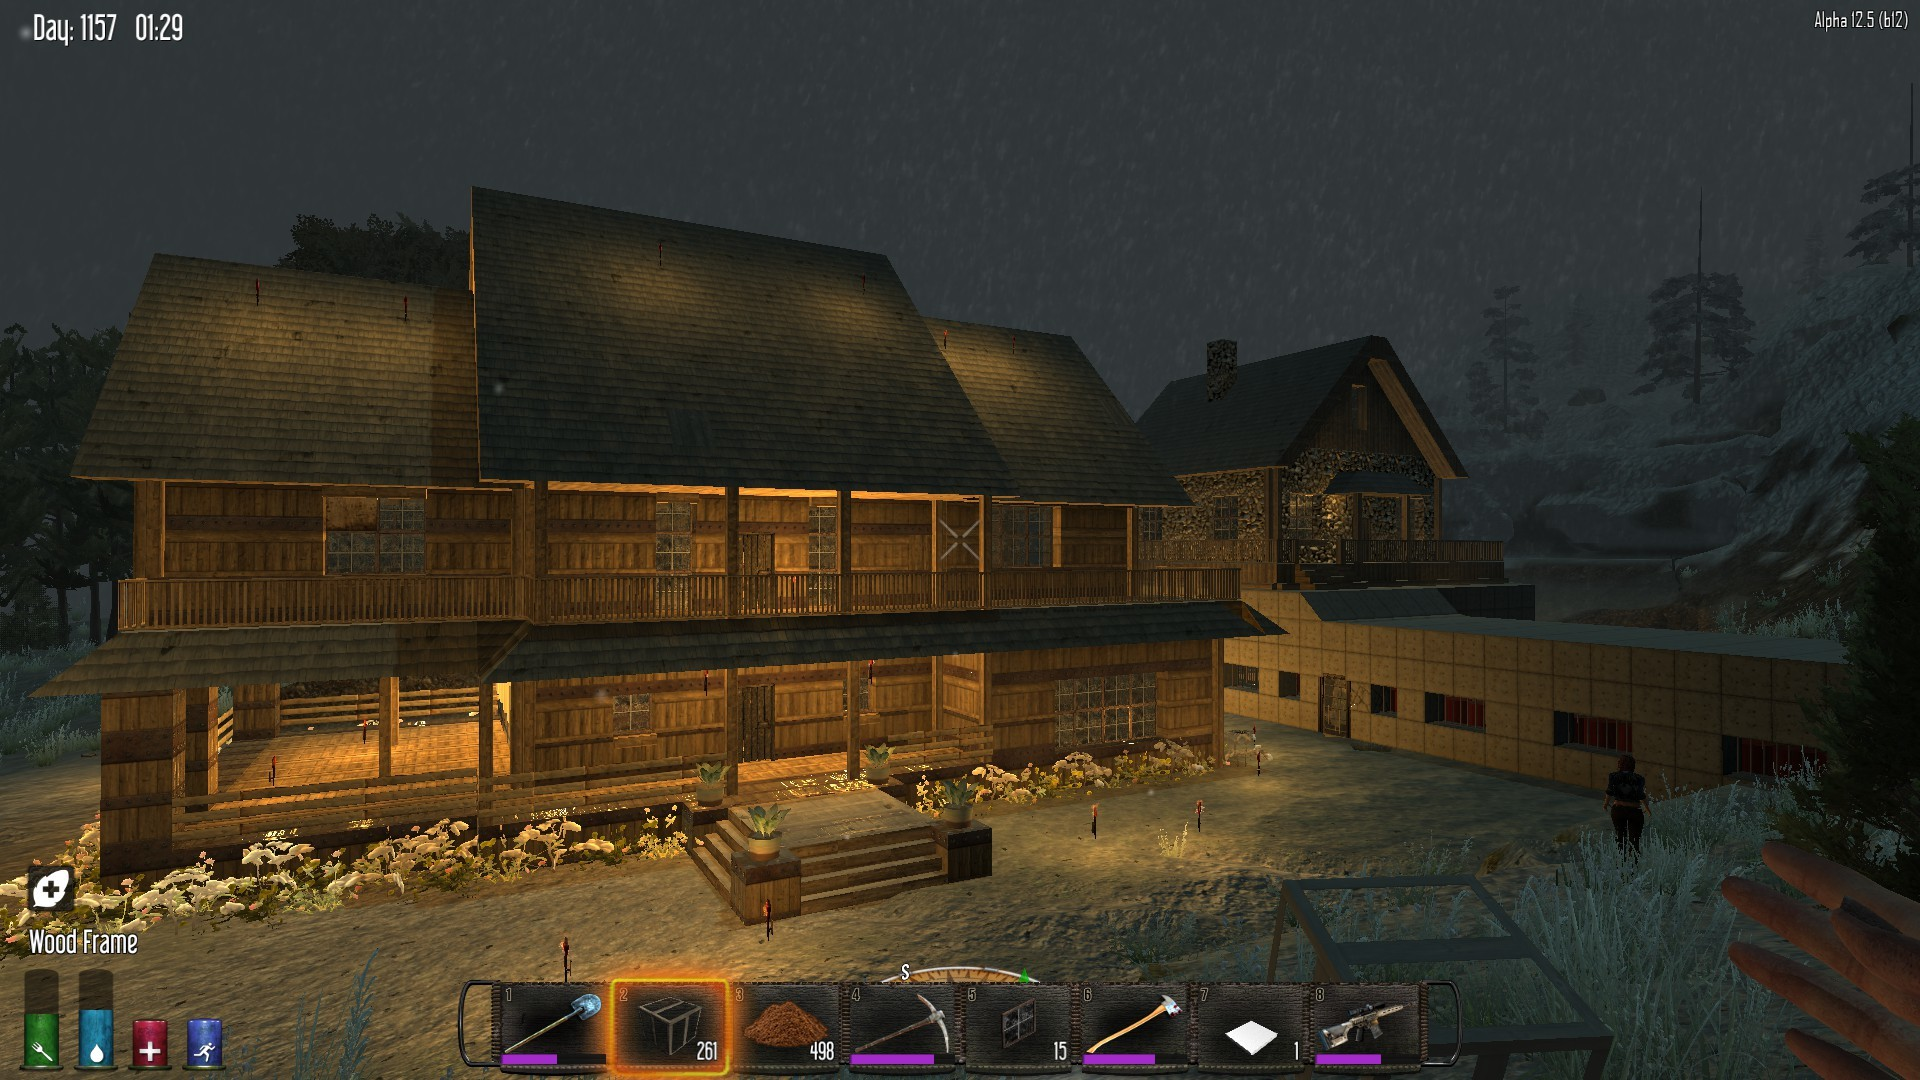 7 Days to Die graphics